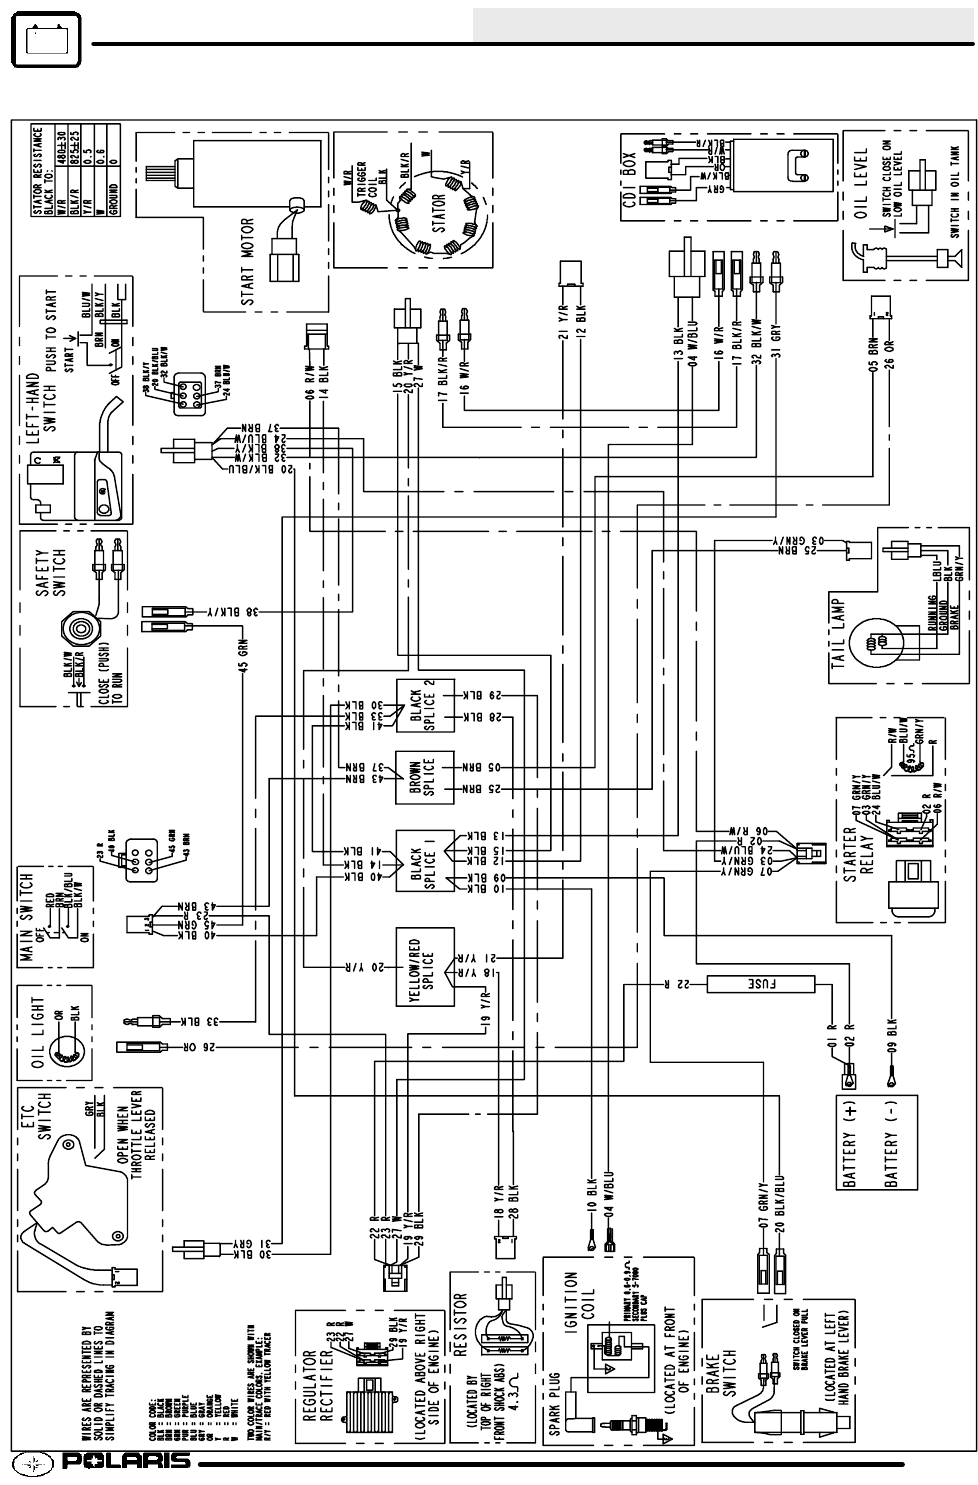 illustrates the 2010 polaris atv sportsman 800 wiring diagram 2001 polaris sportsman 90 wiring diagram - somurich.com